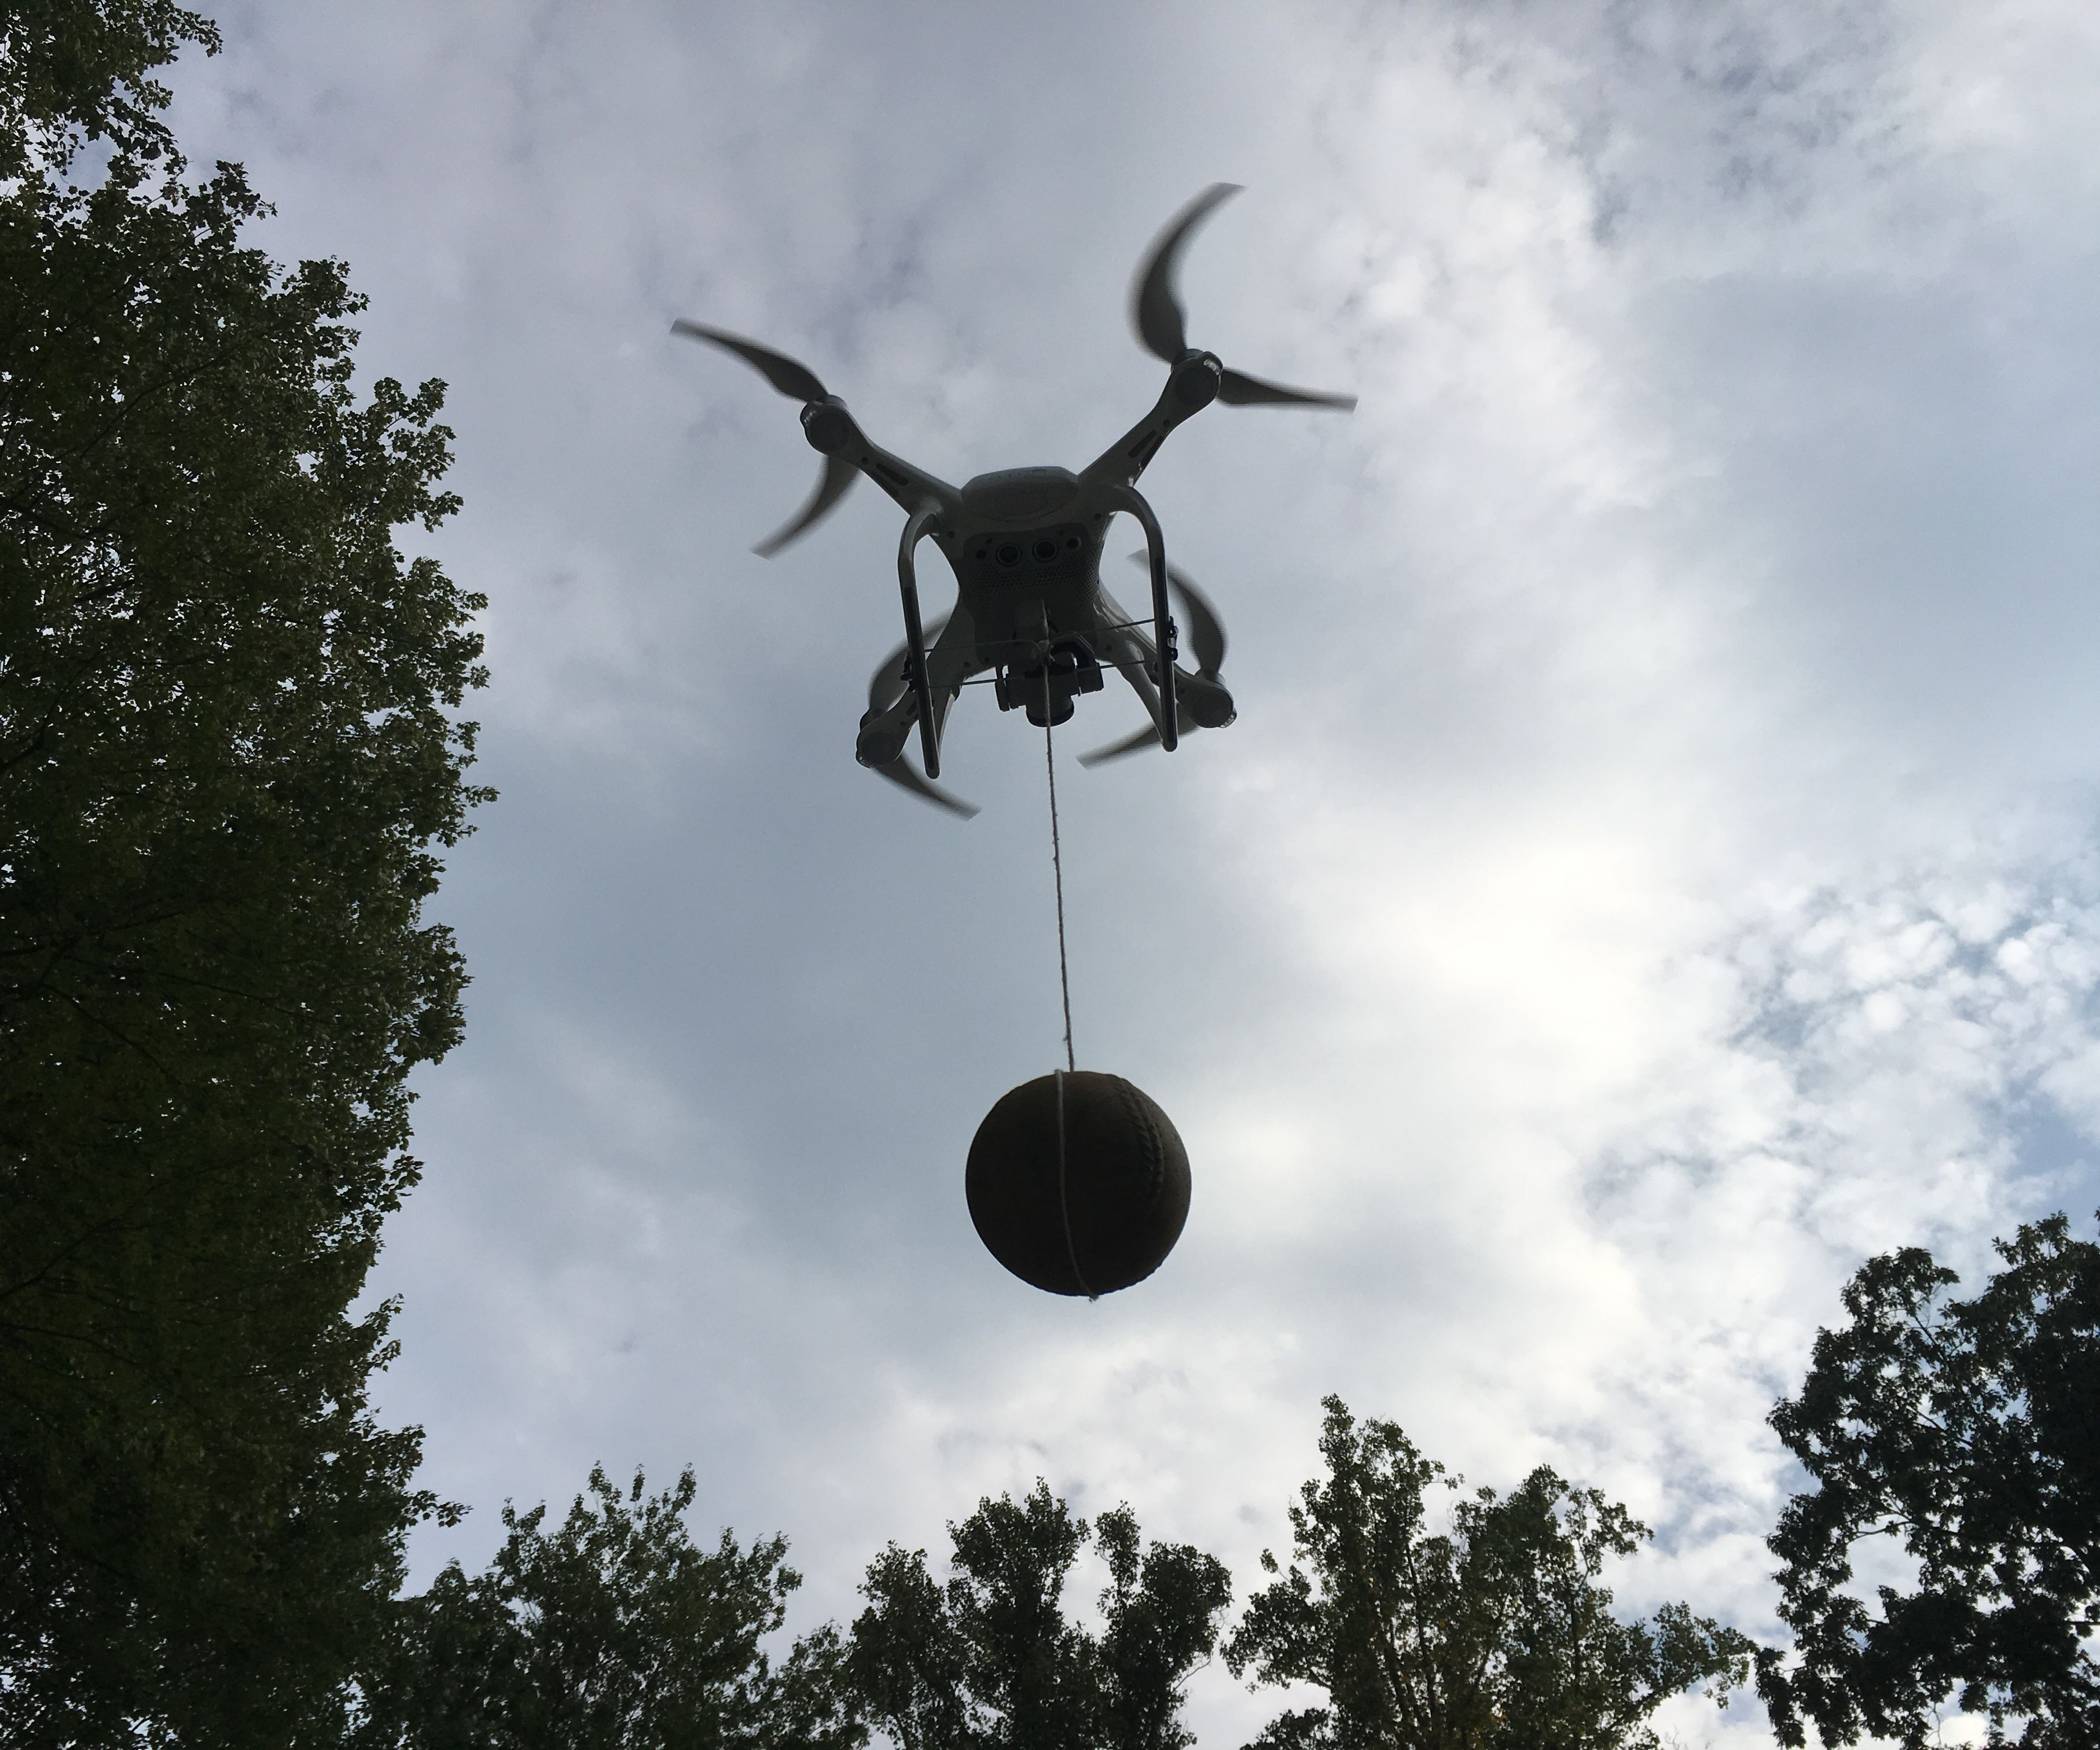 Drone payload drop system